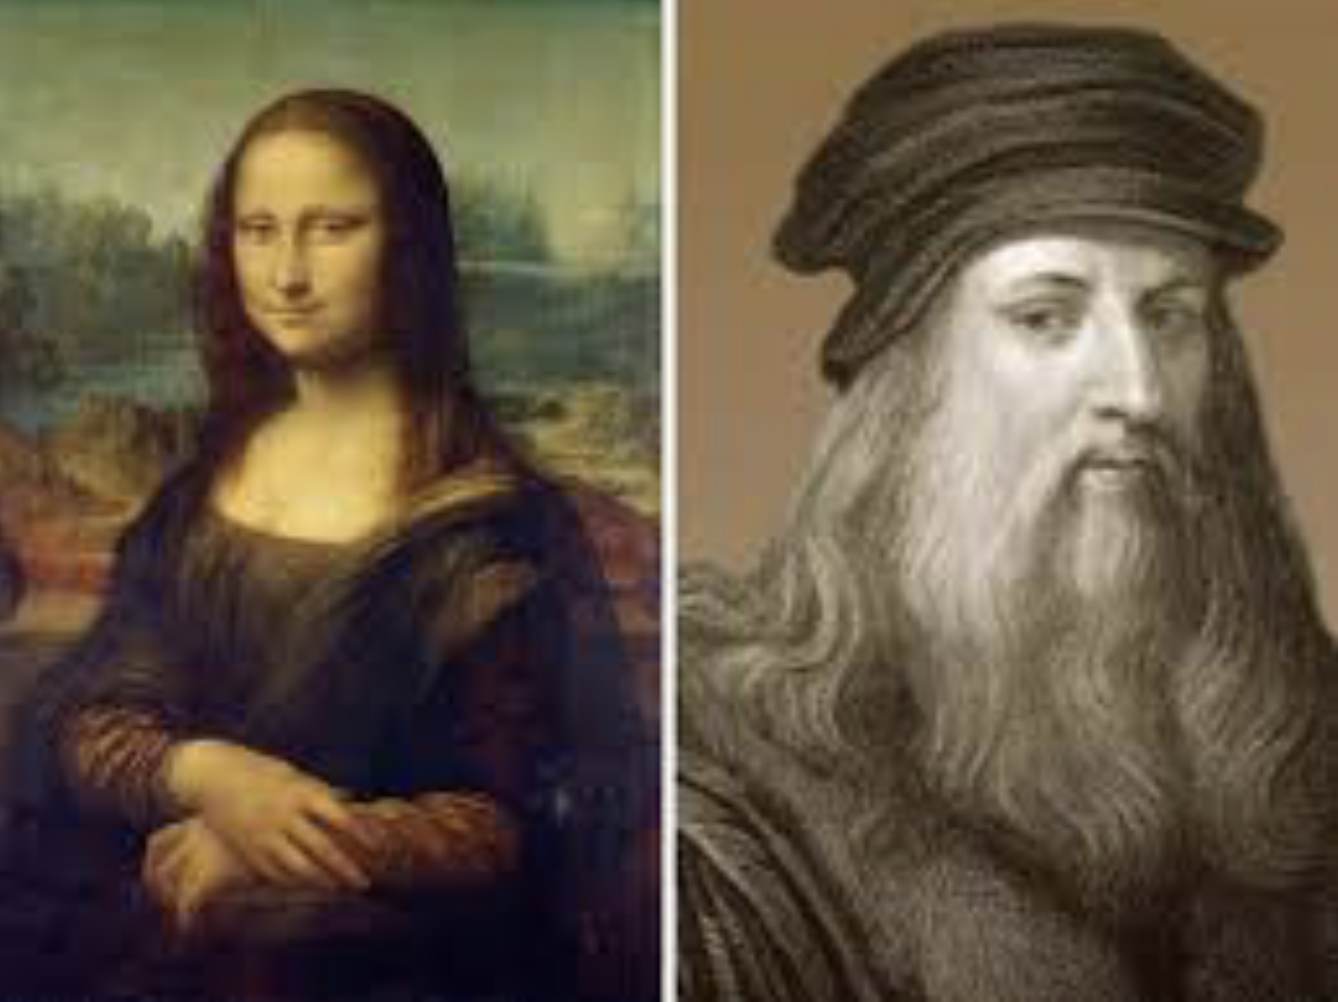 Mona Lisa and Leonardo Davinci